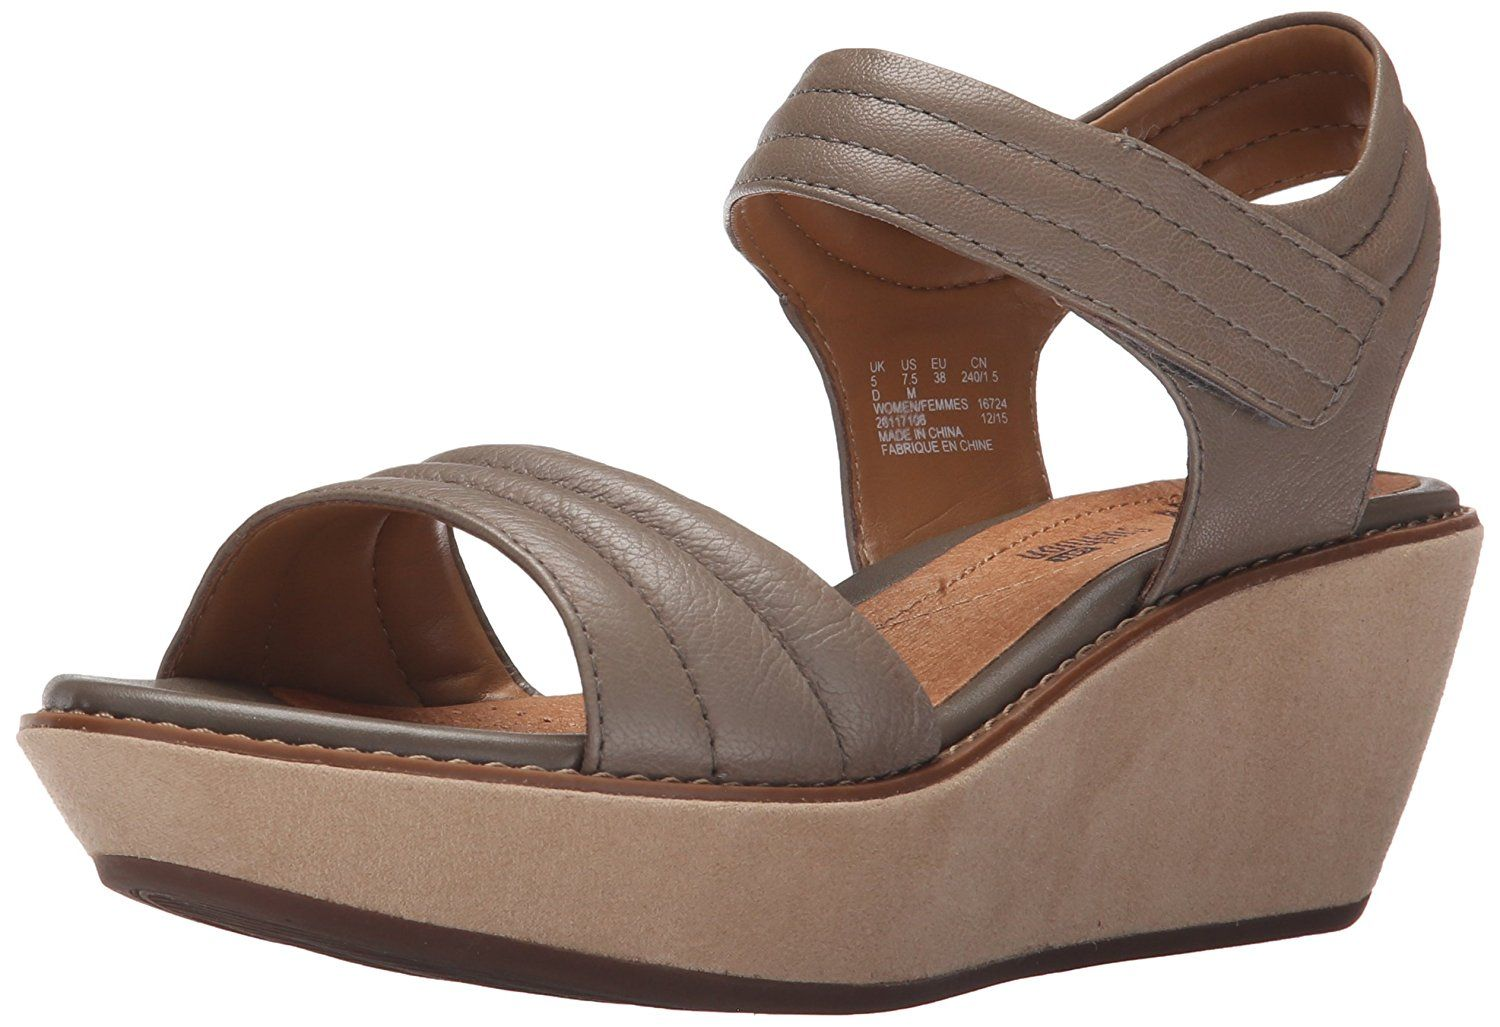 Clarks Women's Hazelle Alba Wedge Sandal >>> To view further, visit now :  Clarks sandals